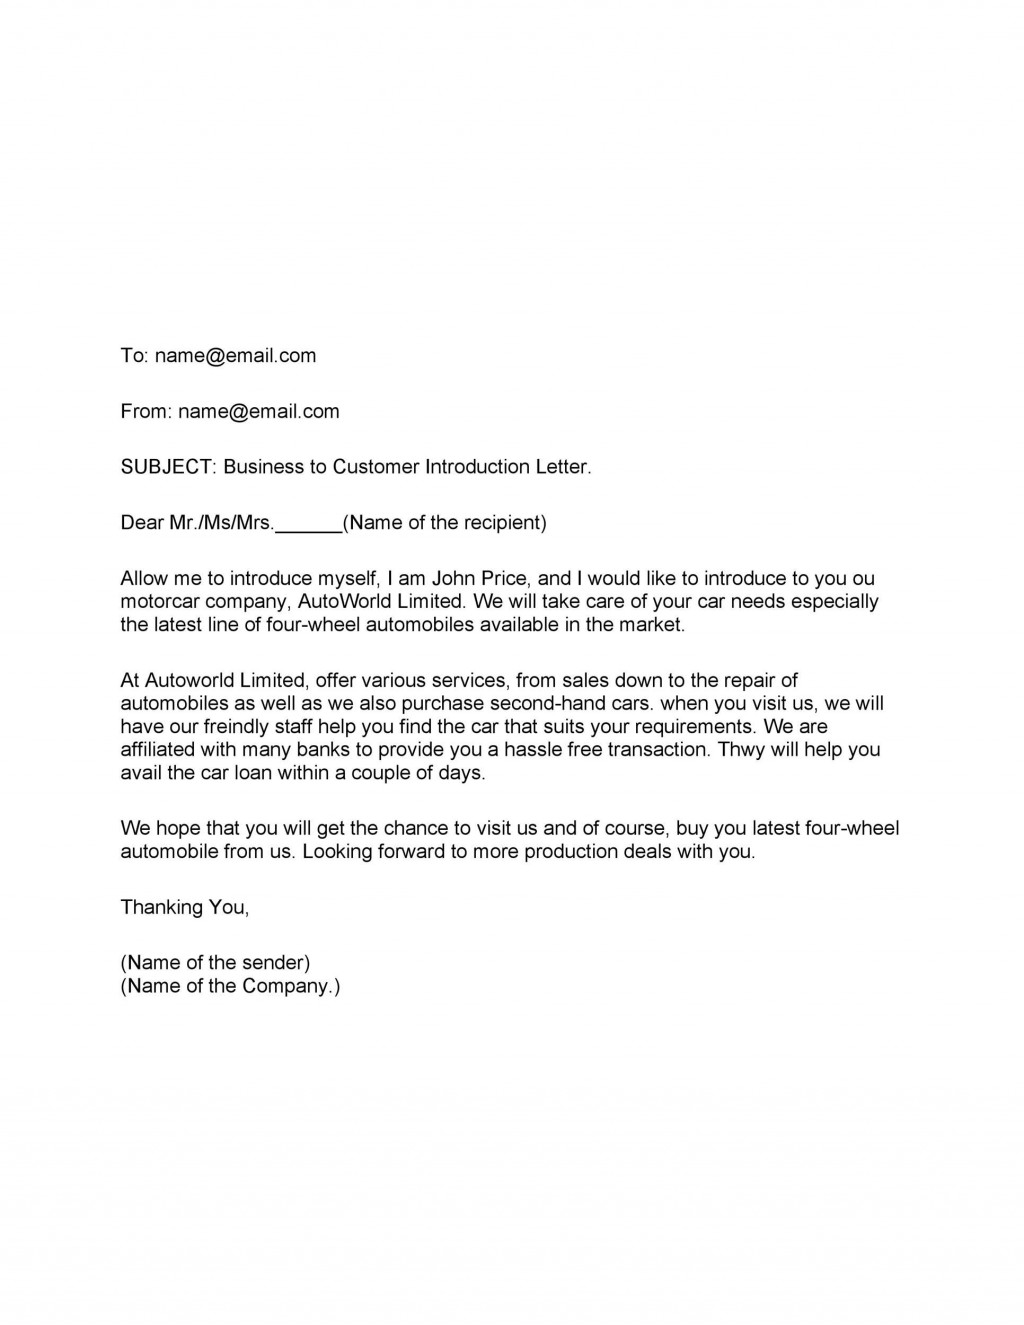 001 Remarkable Busines Introduction Email Template High Def  Professional DevelopmentLarge